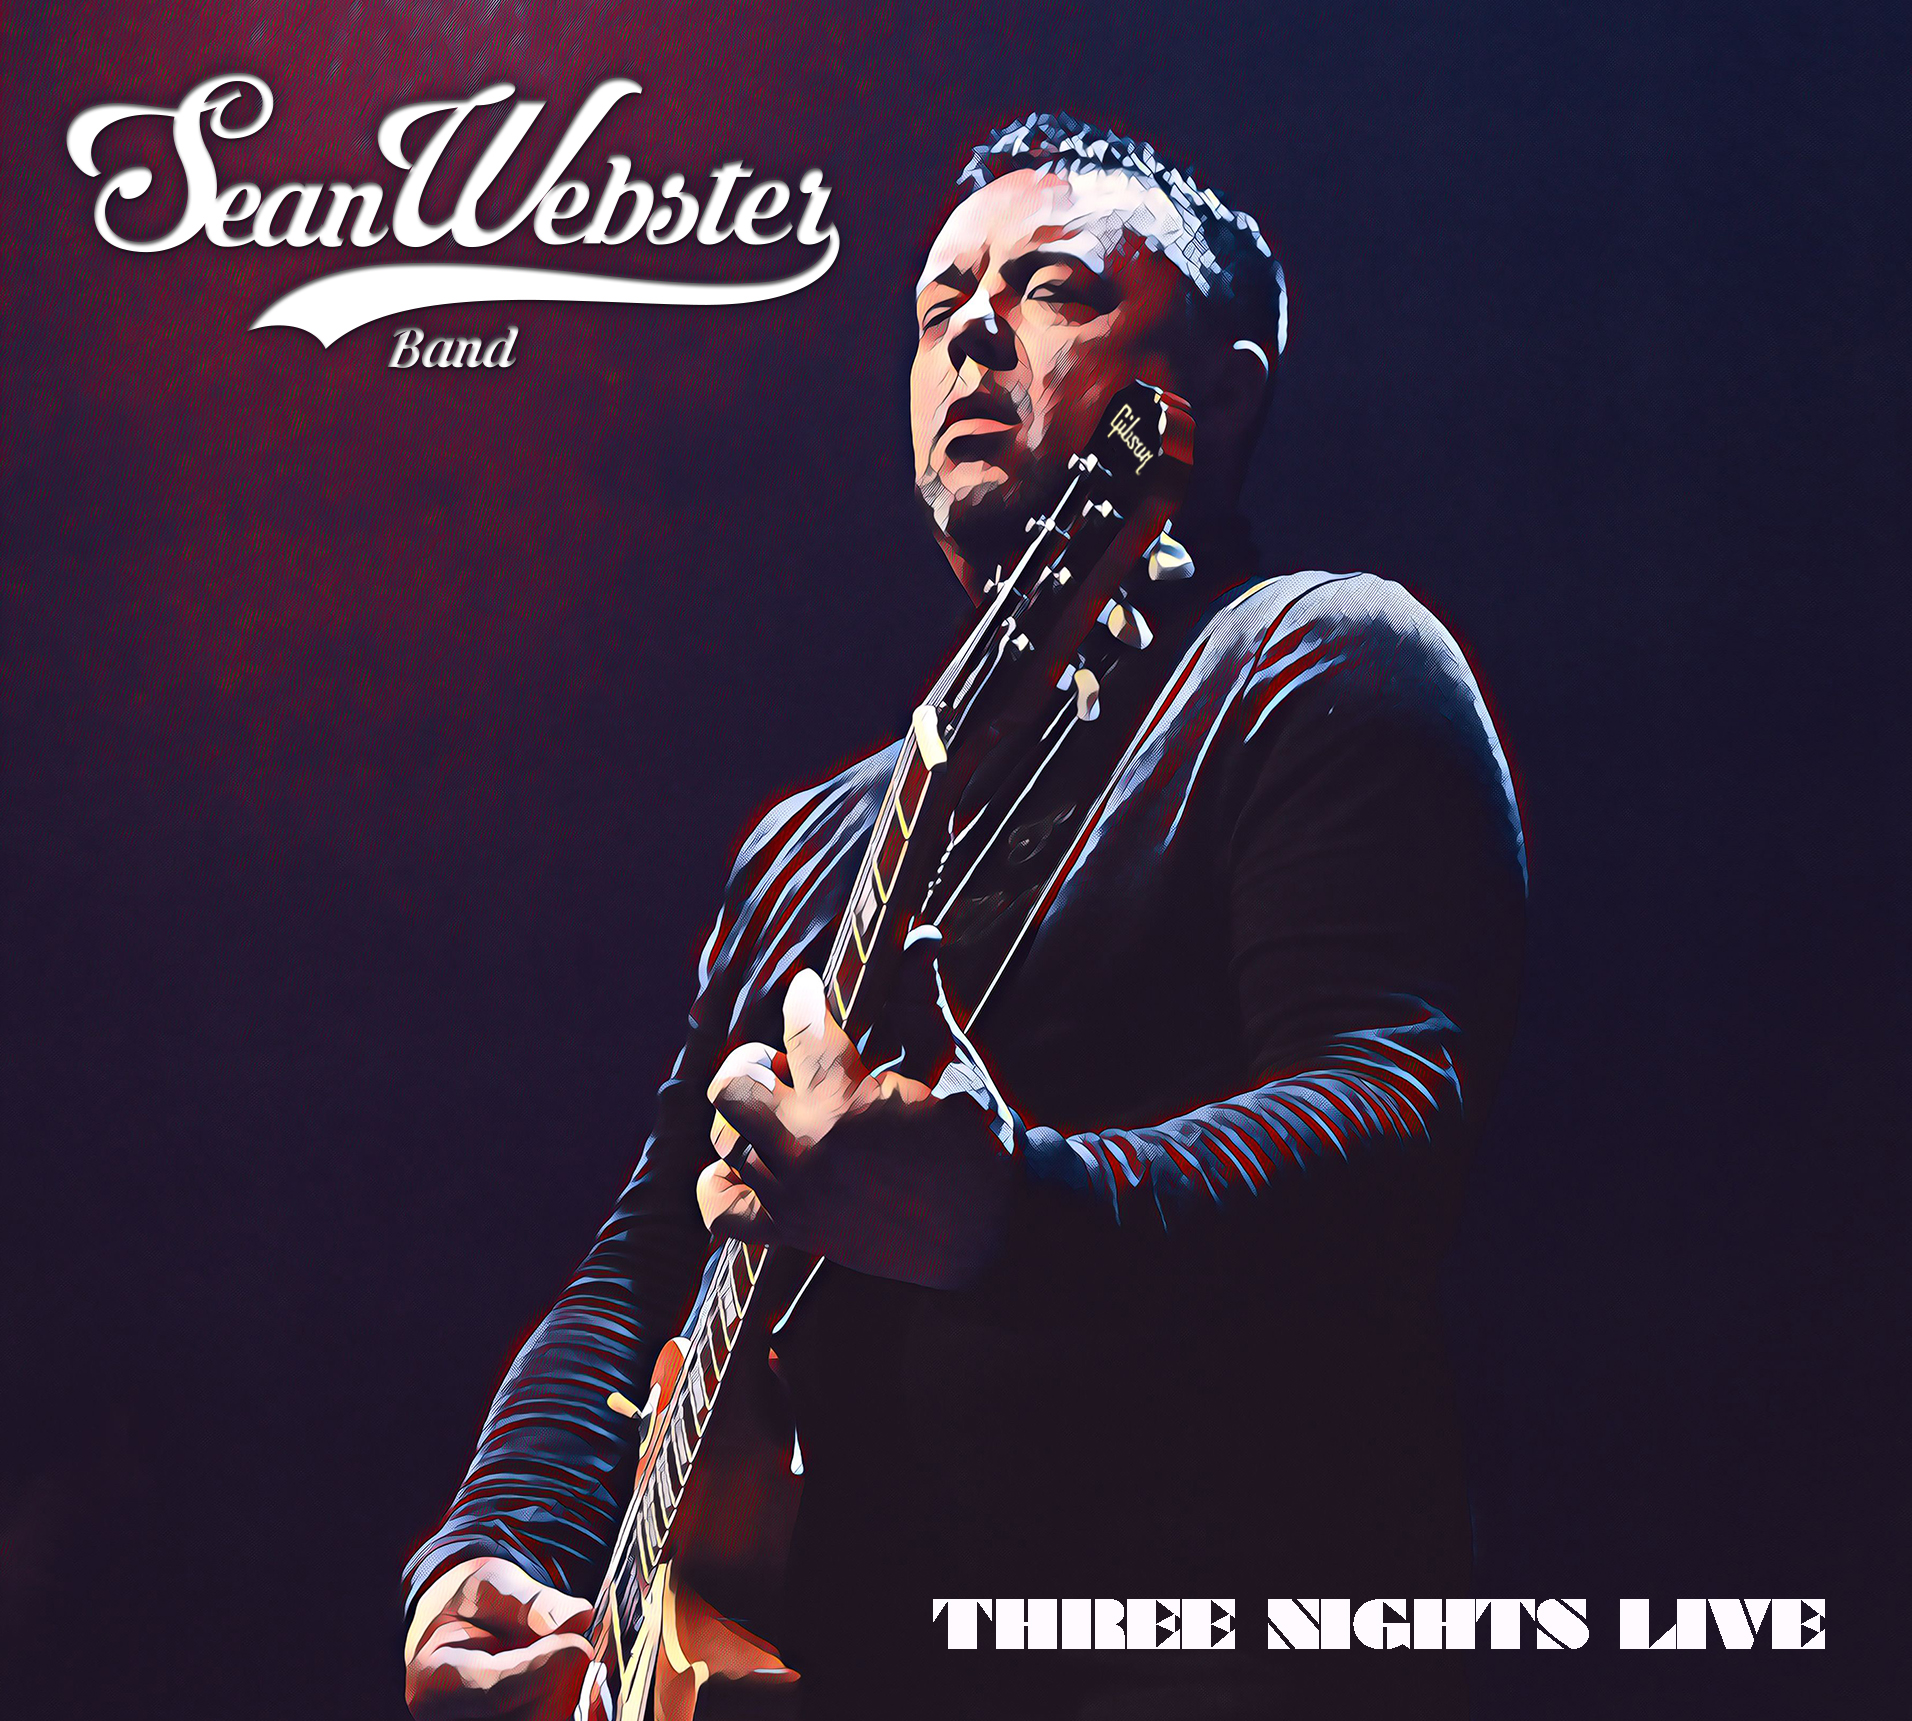 Thrilling Sean Webster Blues with Three Nights Live